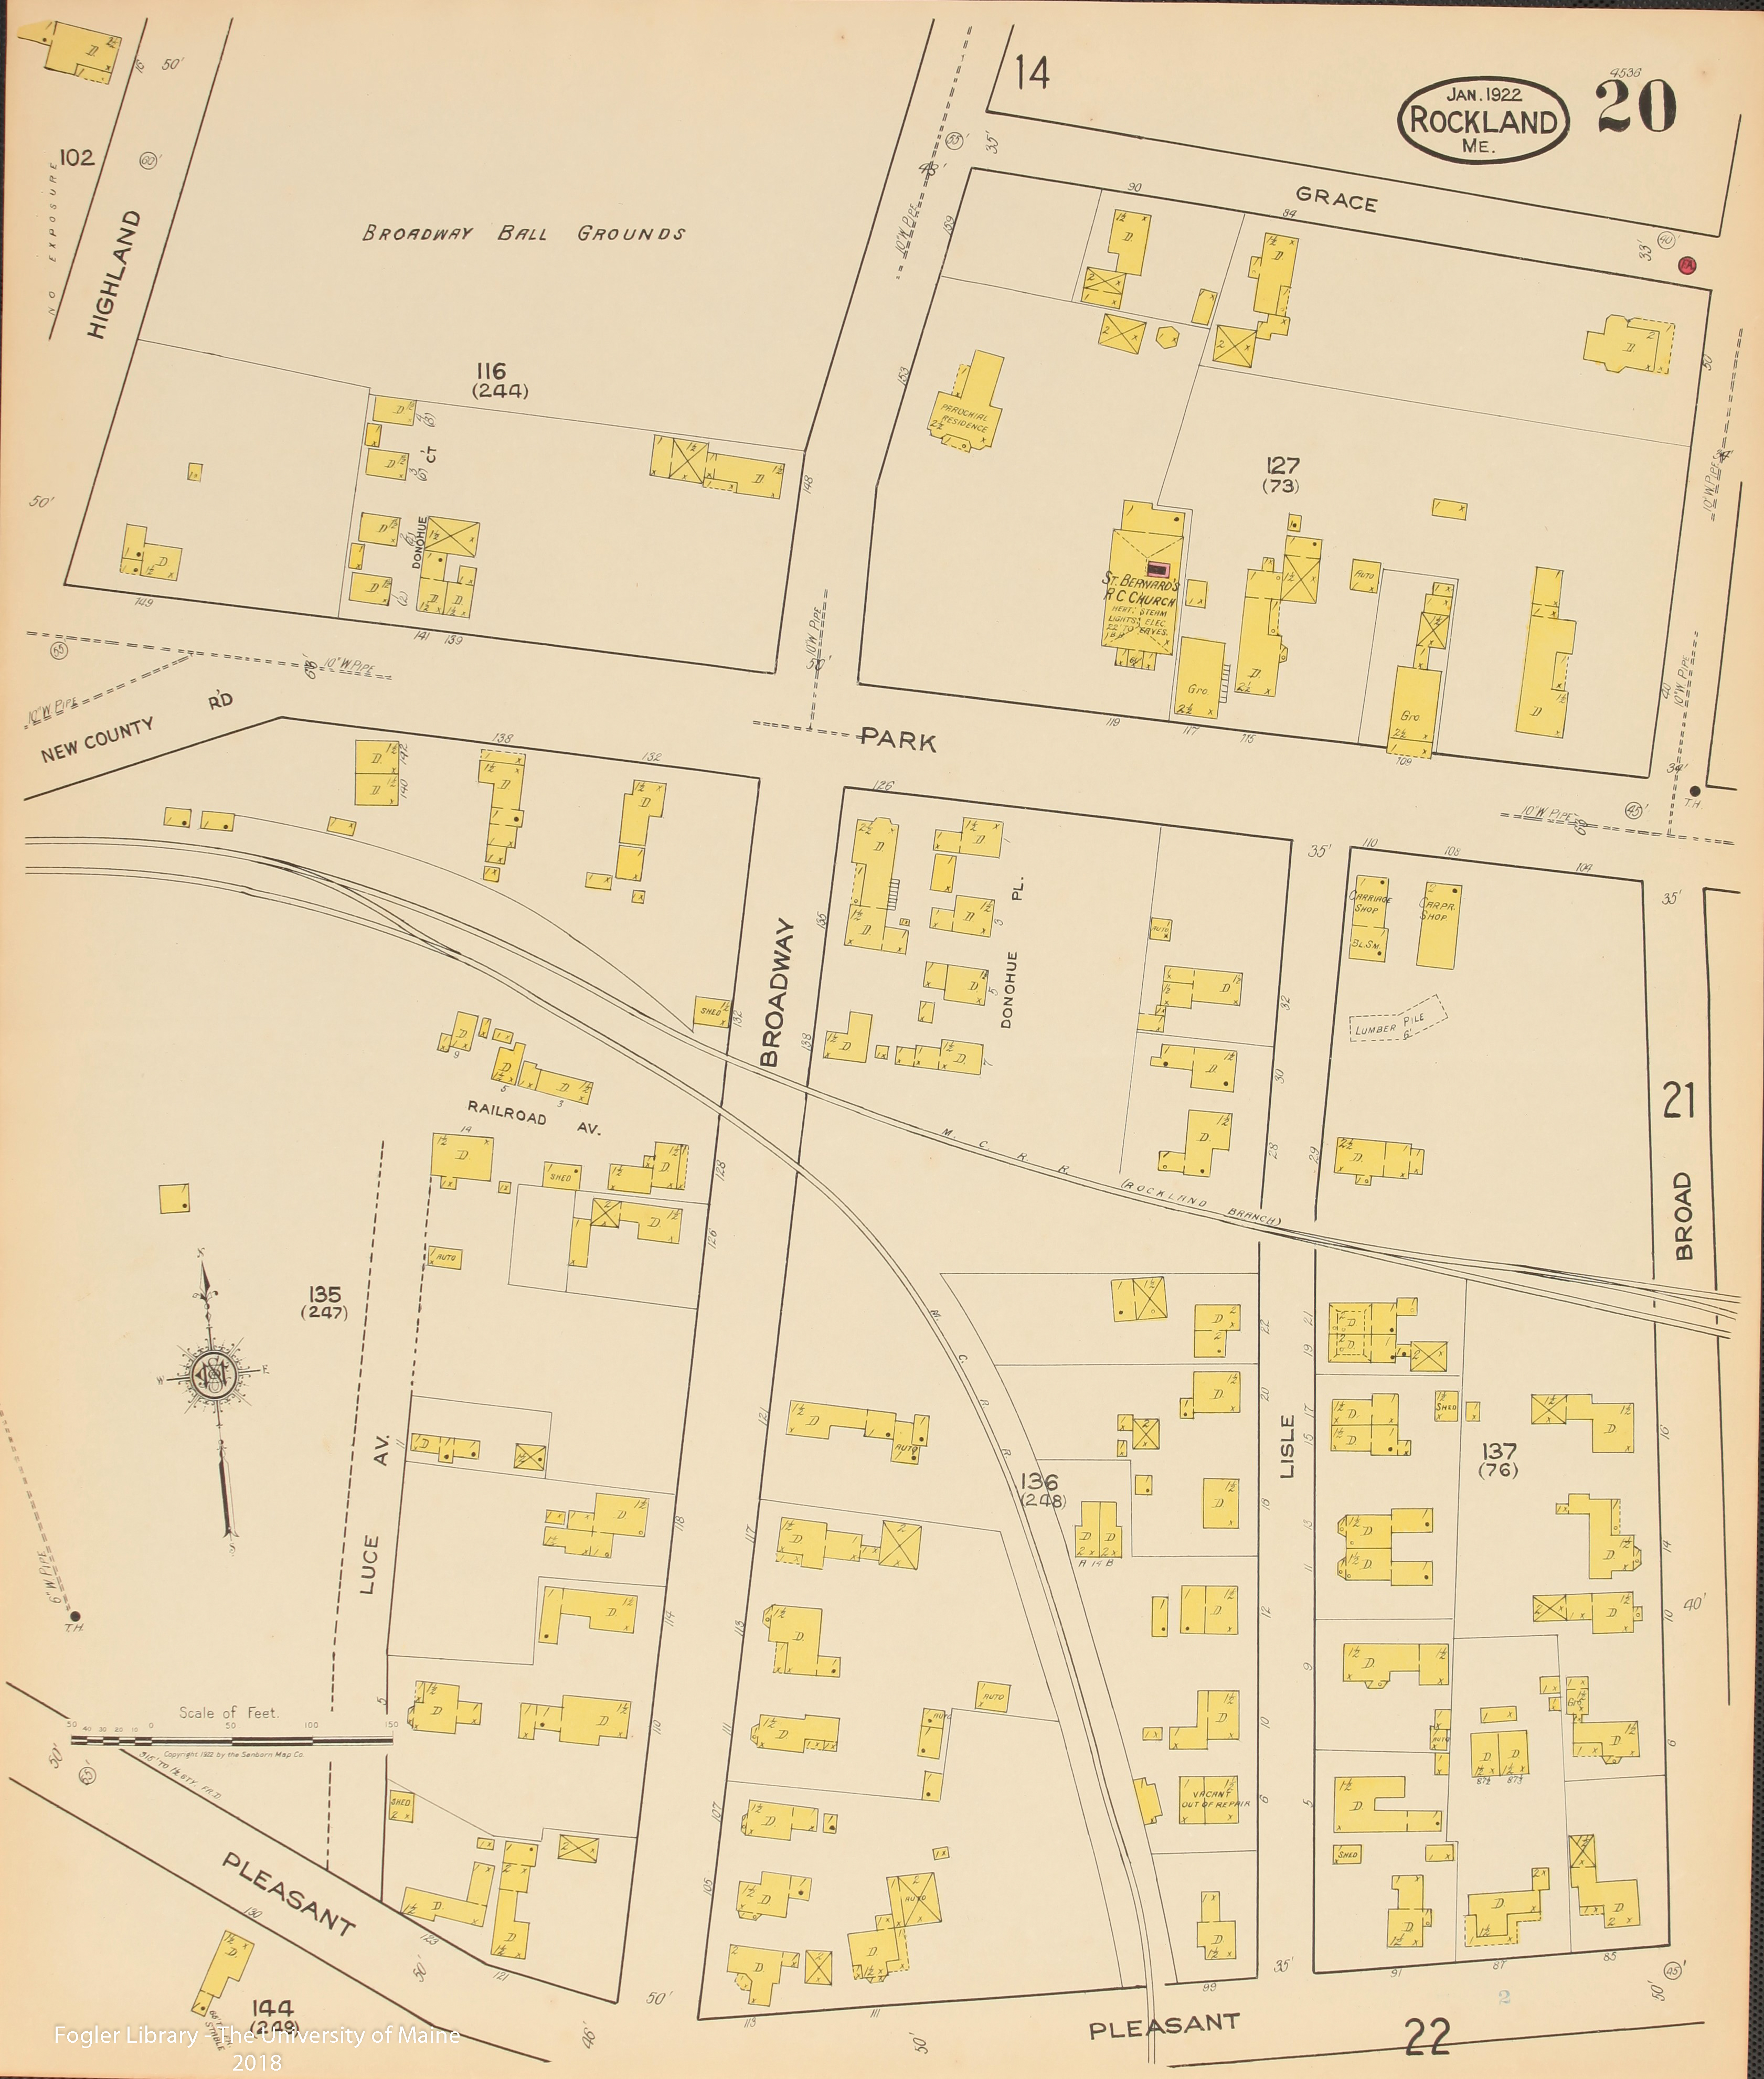 map of rockland maine Rockland 1922 By Sanborn Map Company map of rockland maine